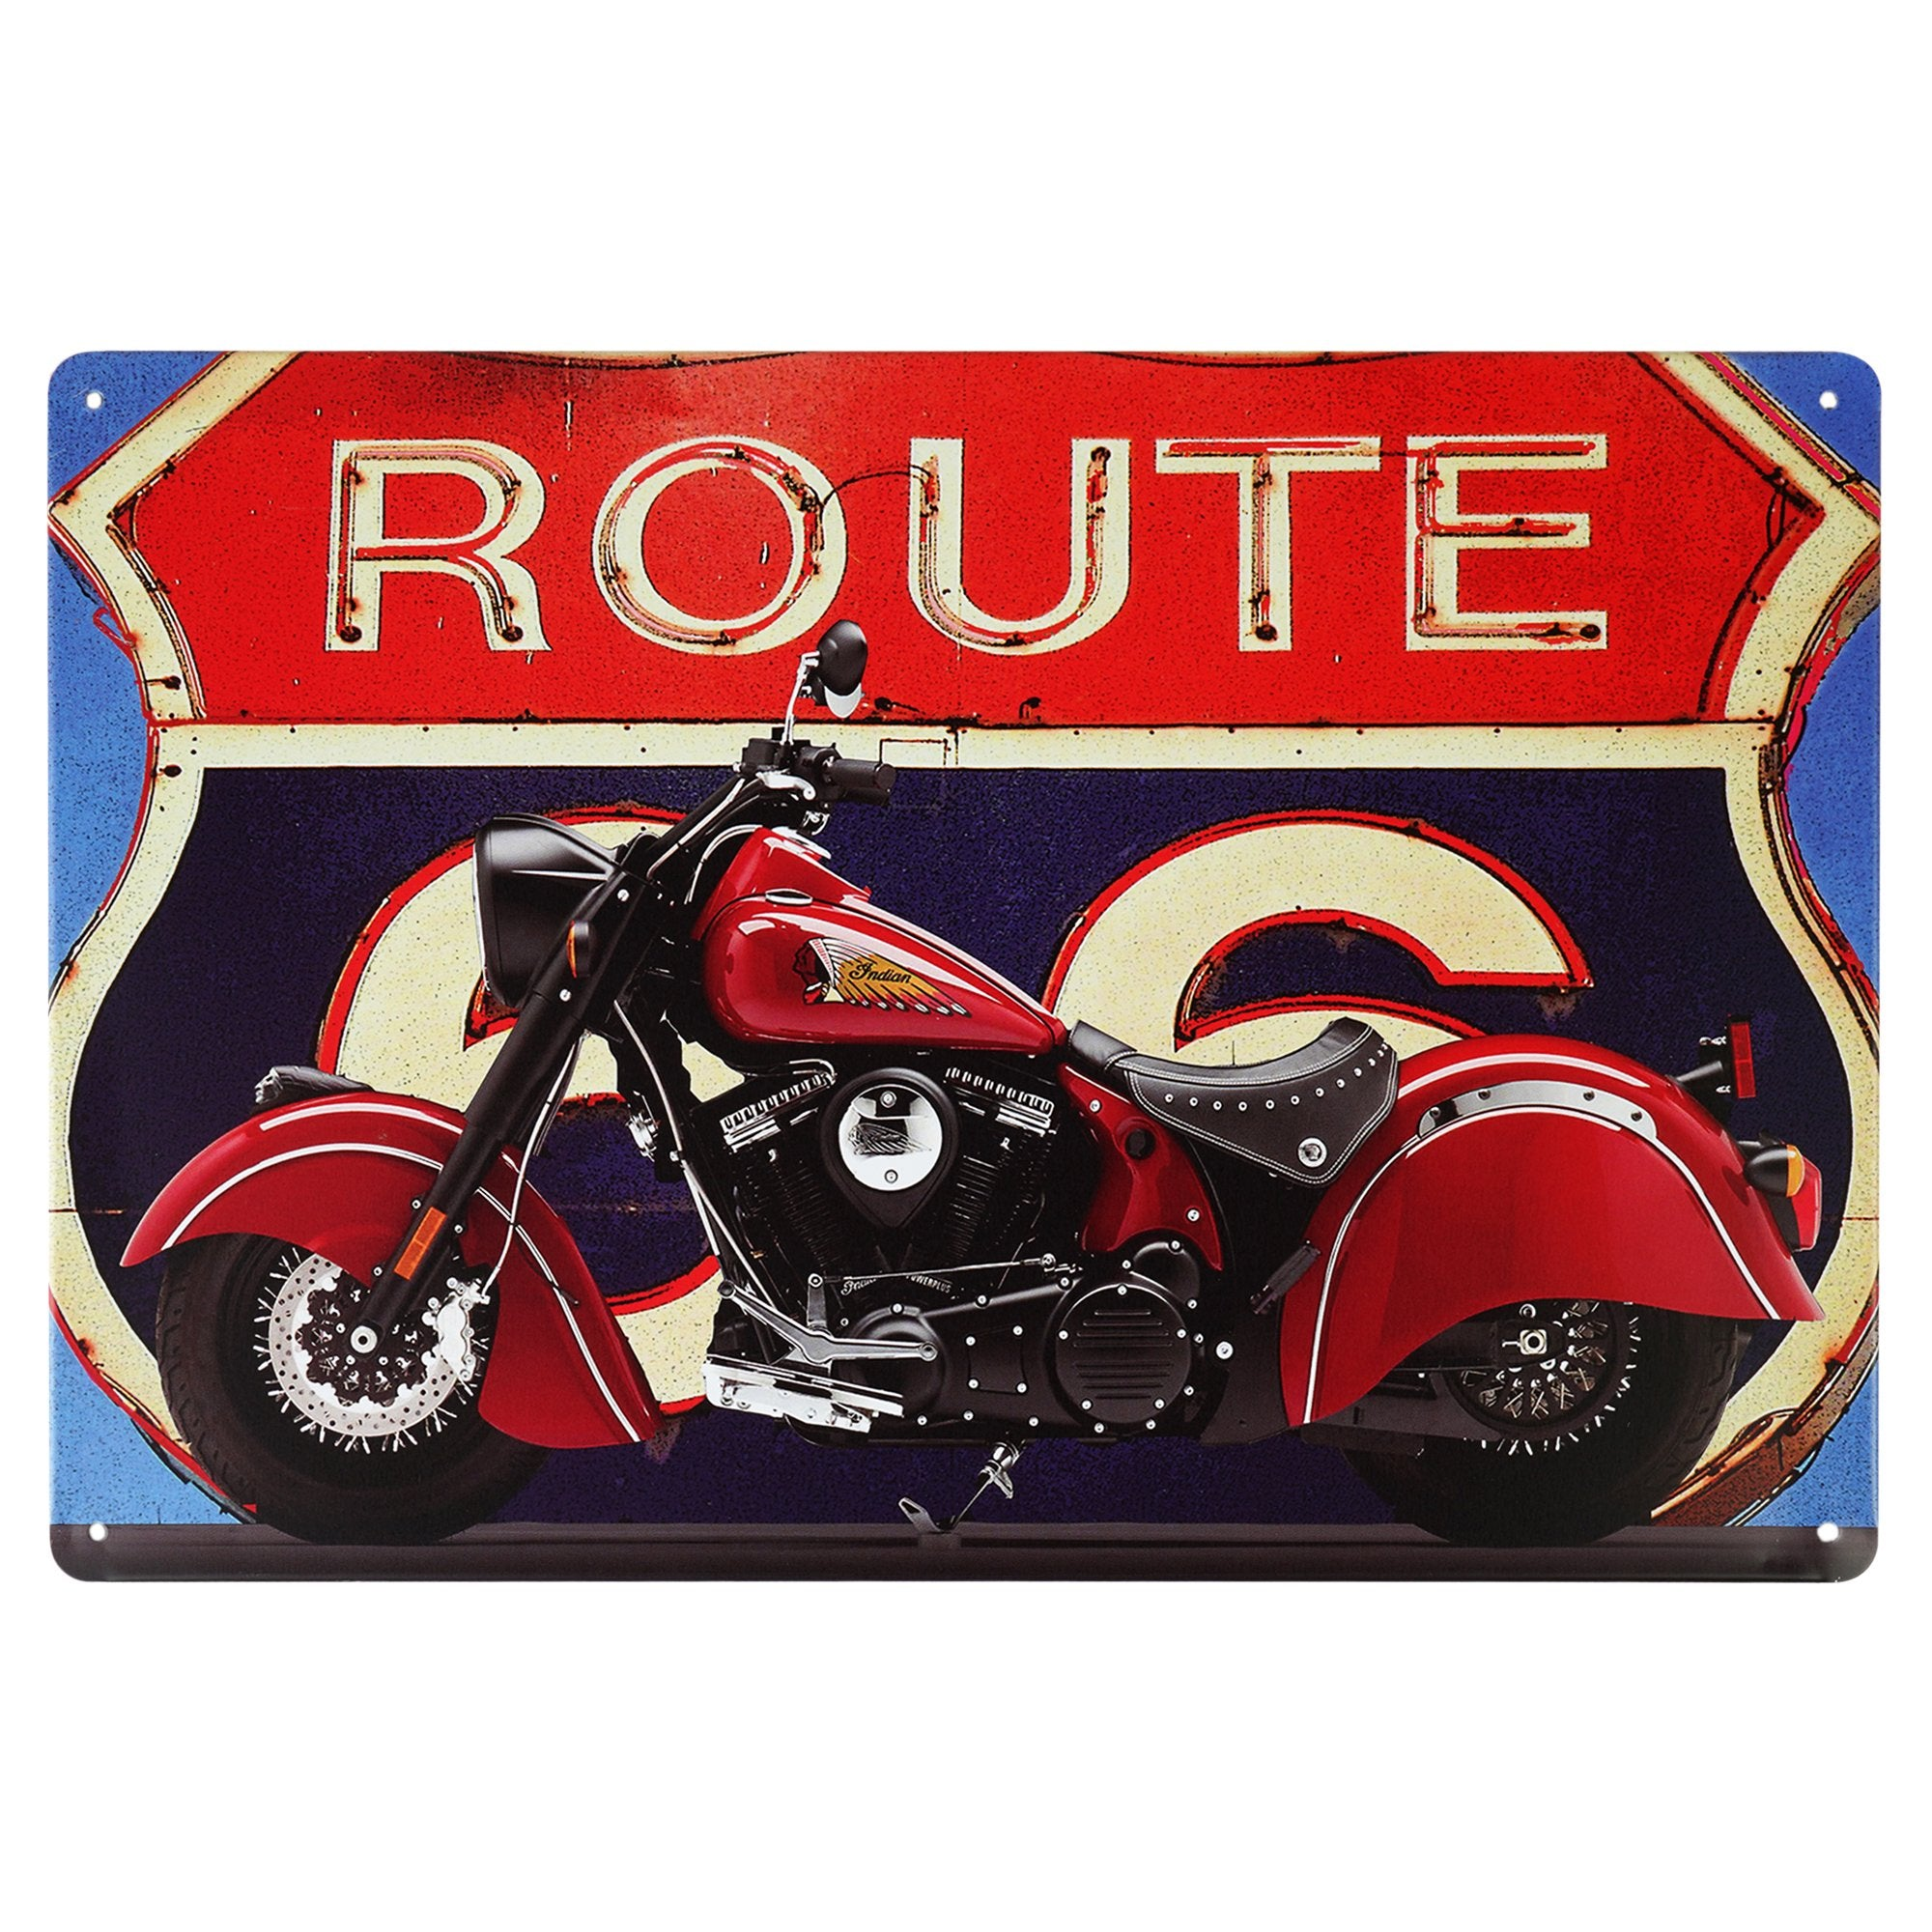 U.S. Route 66 Wall Plaque - Teak Tale